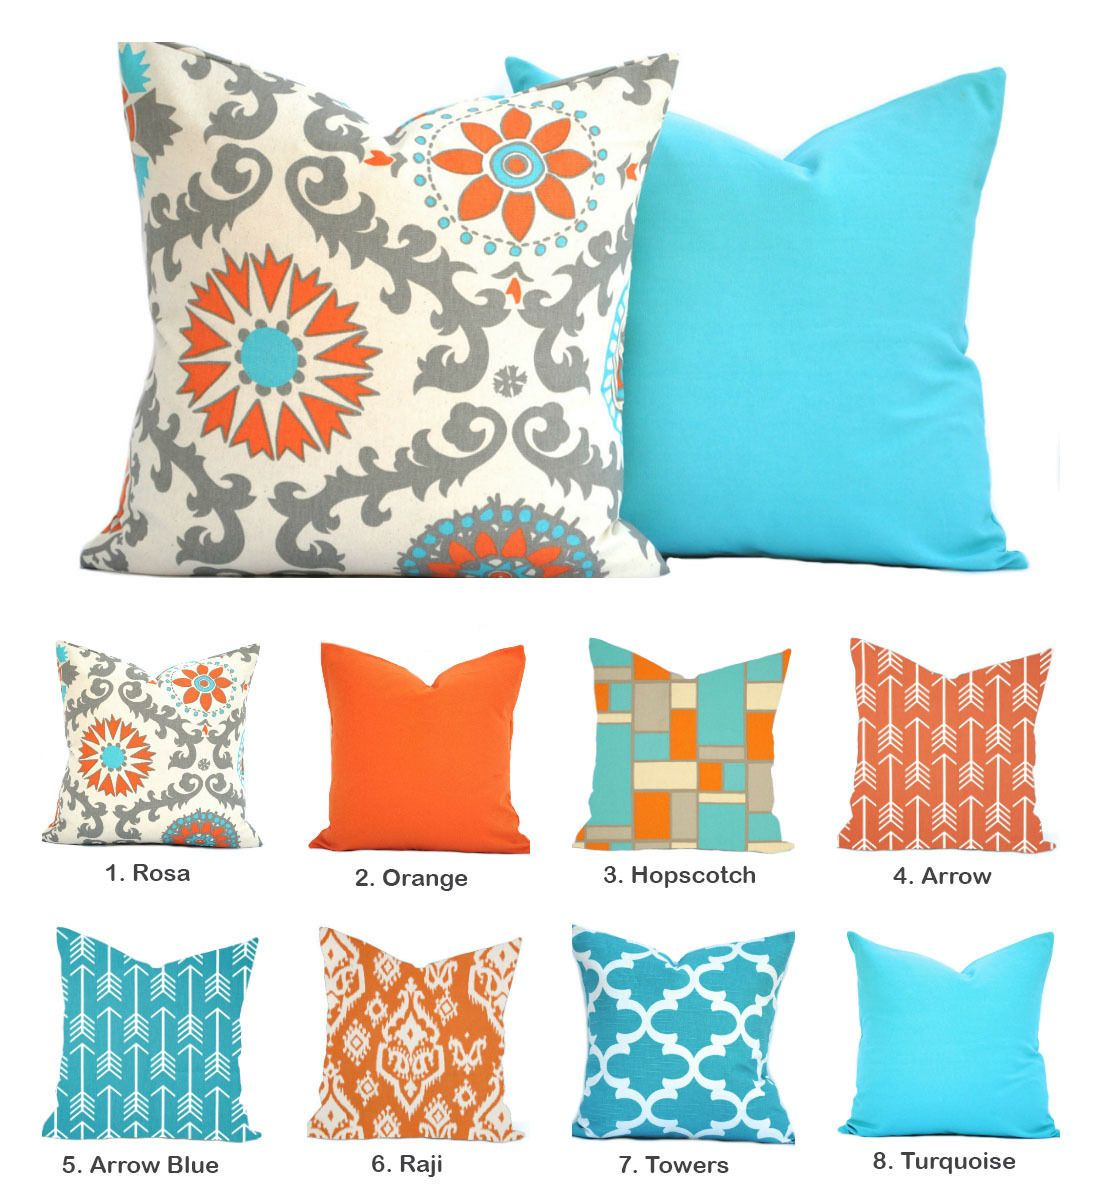 Orange Turquoise Pillow Cover Arrow Medallion Blue Floral Yellow Pillow Turquoise Pillows Turquoise Pillow Covers Orange And Turquoise